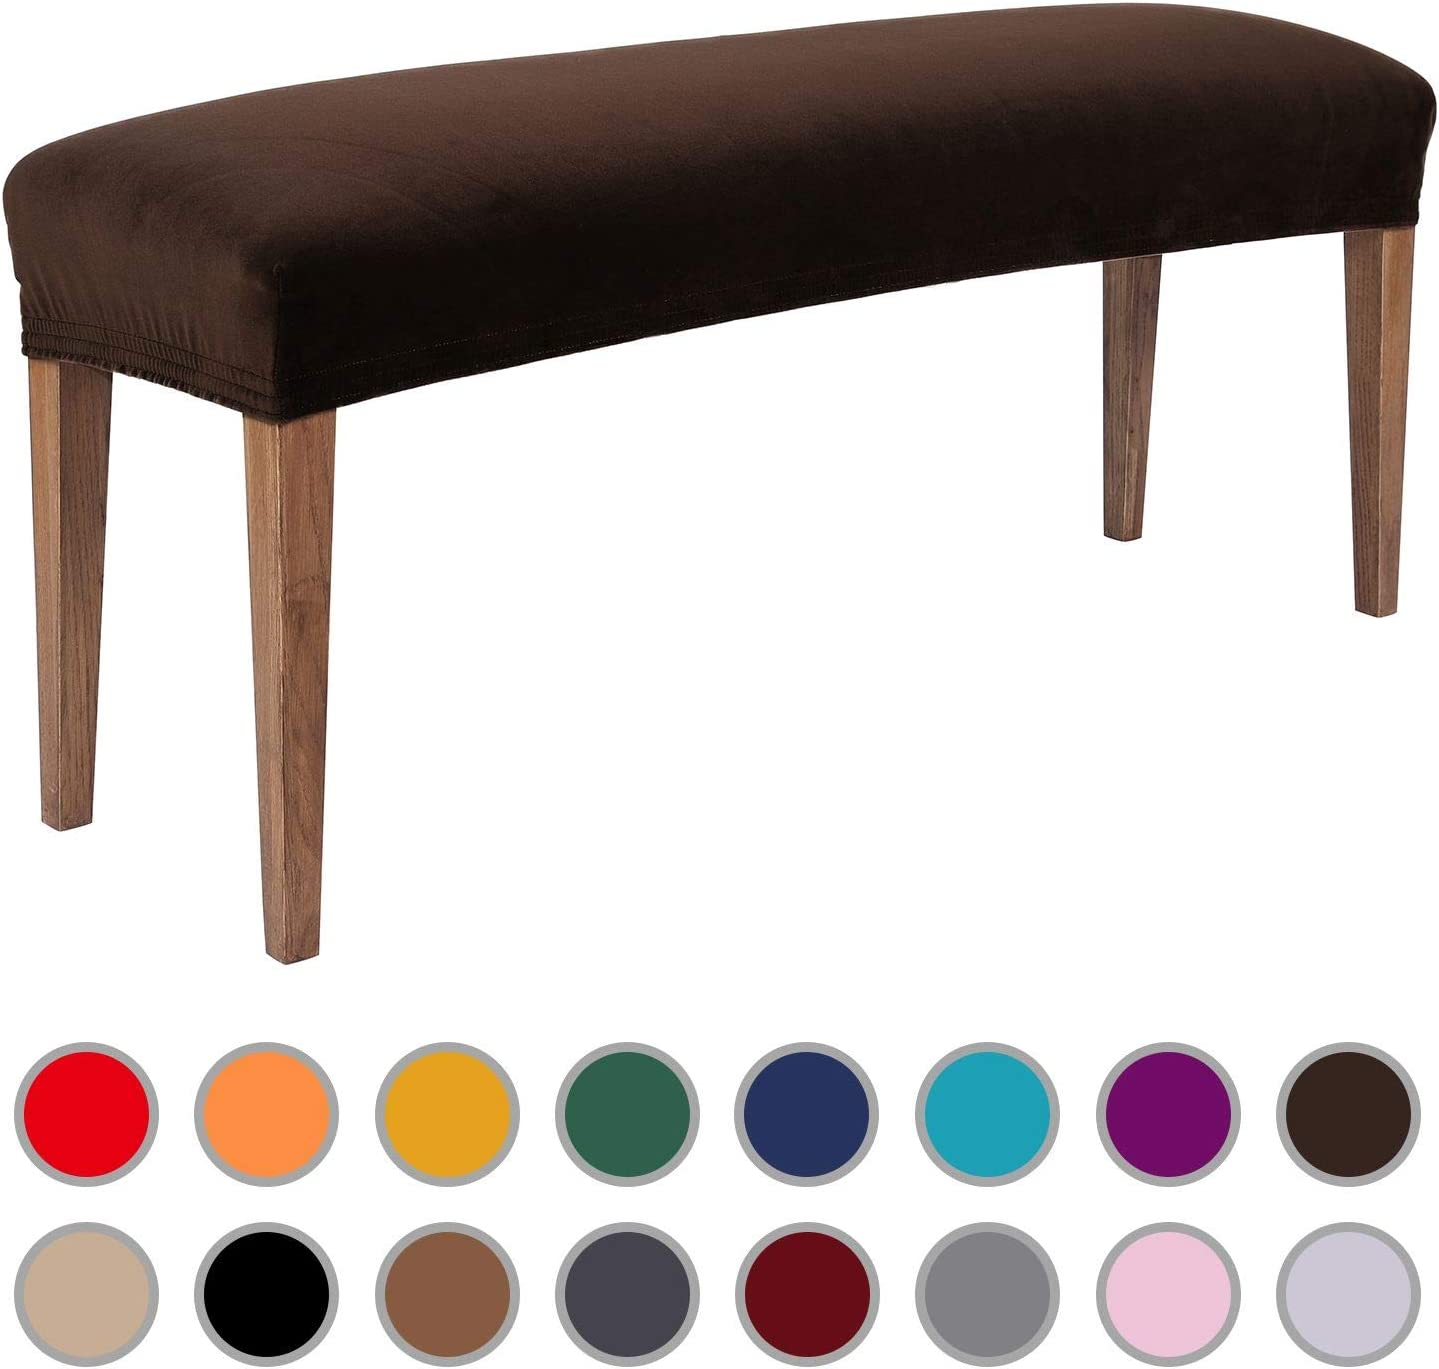 Colorxy Velvet Bench Covers for Dining Room - Stretch Spandex Upholstered Bench Slipcover Rectangle Removable Washable Bench Furniture Seat Protector for Living Room, Bedroom, Kitchen (Dark Coffee)